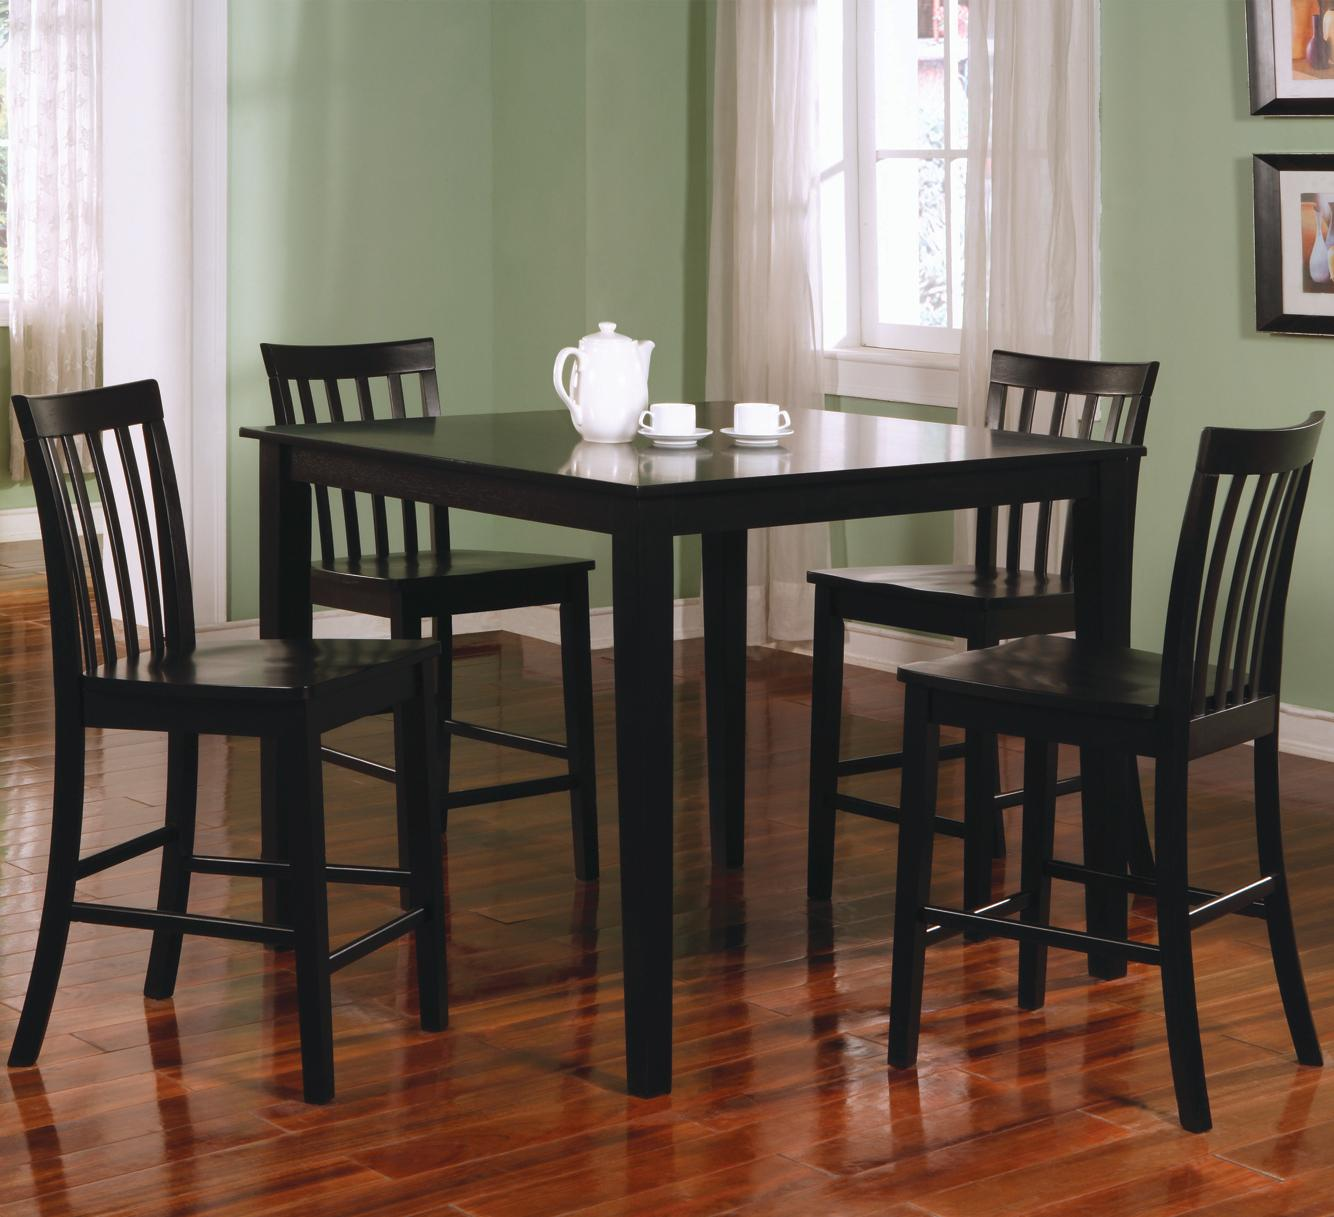 bar height kitchen table rustic island lighting coaster ashland 5 piece counter dining set value city